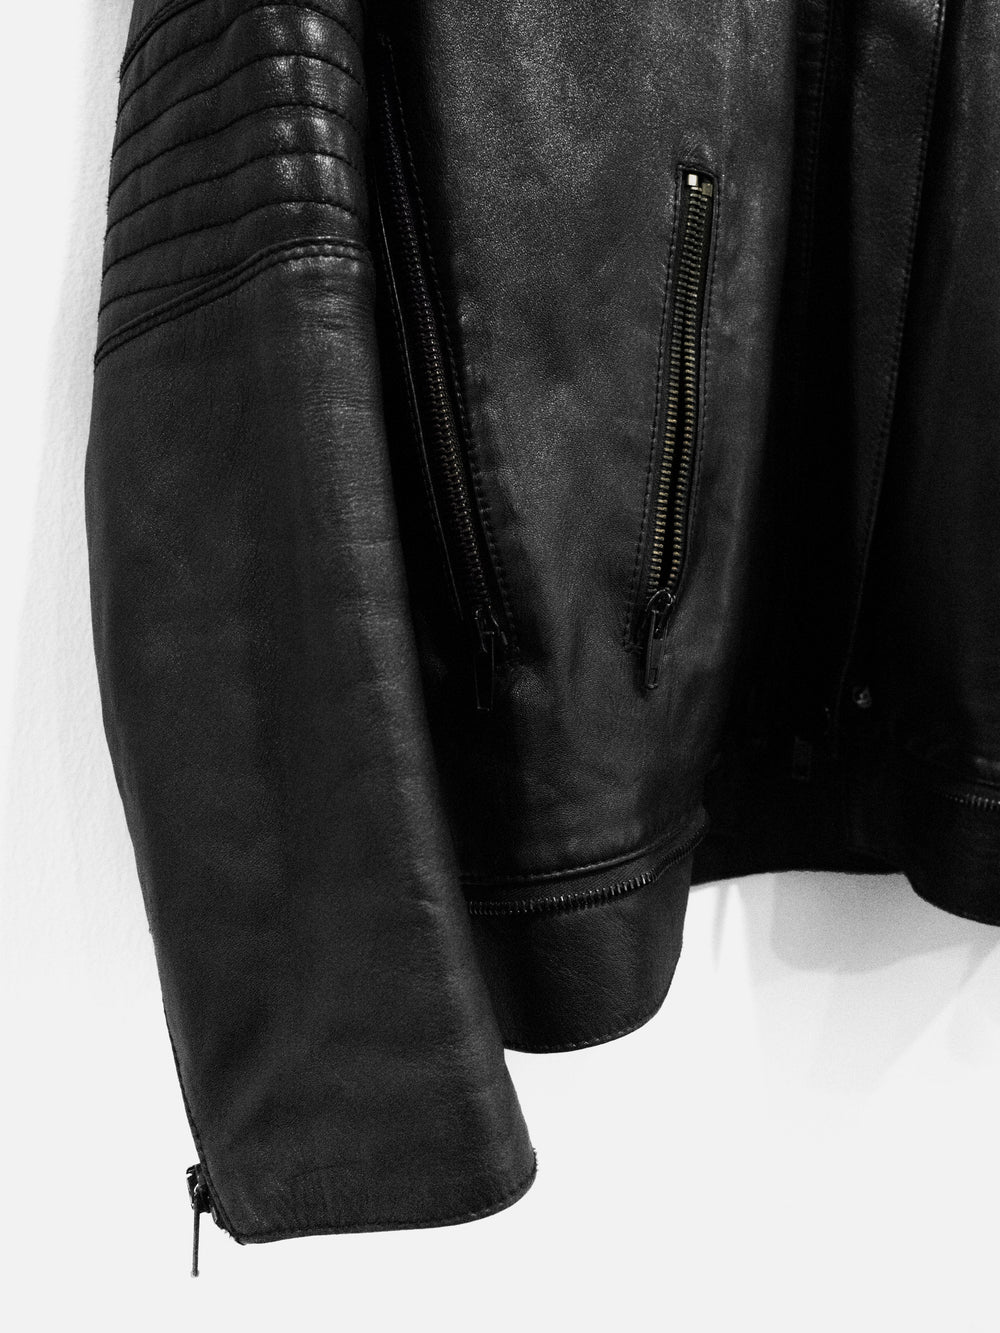 Helmut Lang AW99 Lamb Leather Astro Biker Jacket